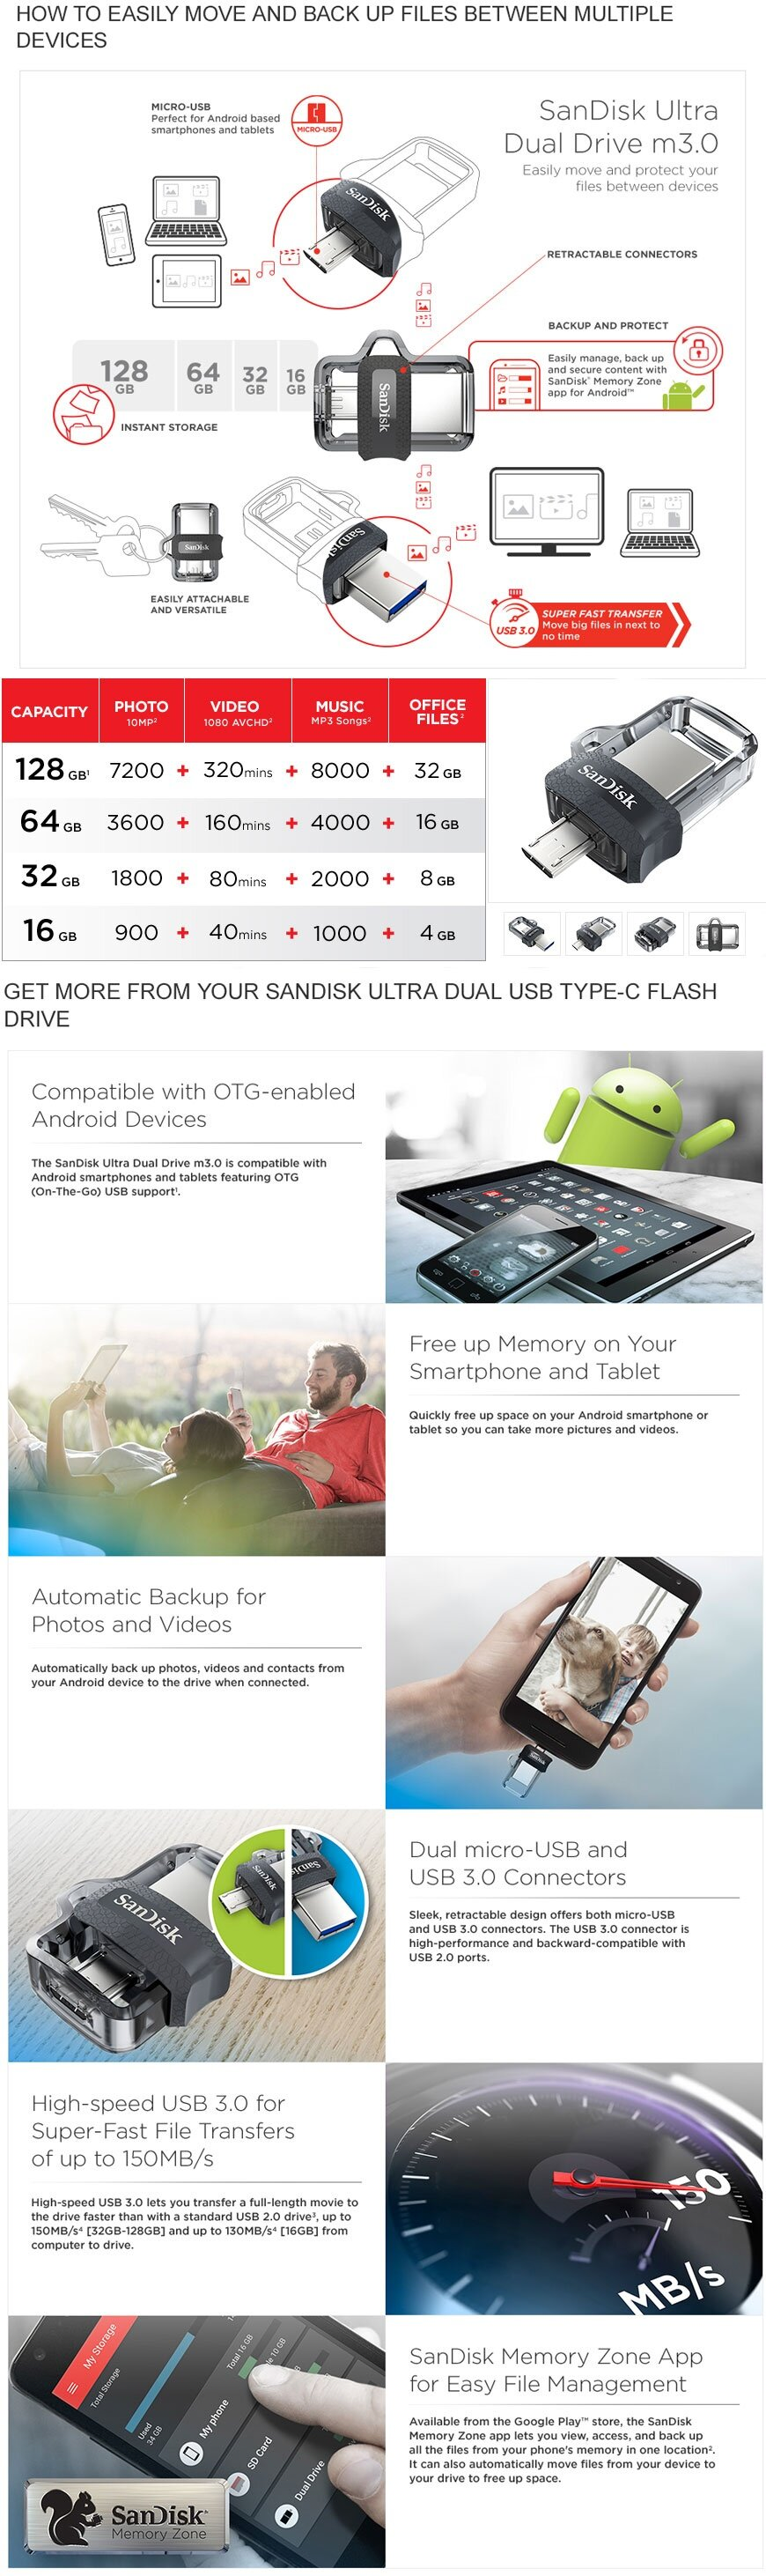 Sandisk Ultra Dual Drive 32gb M30 Otg Usb Flash For Android 16gb 30 100 Original Getting More From Your Device Compatible With Enabled Devices The